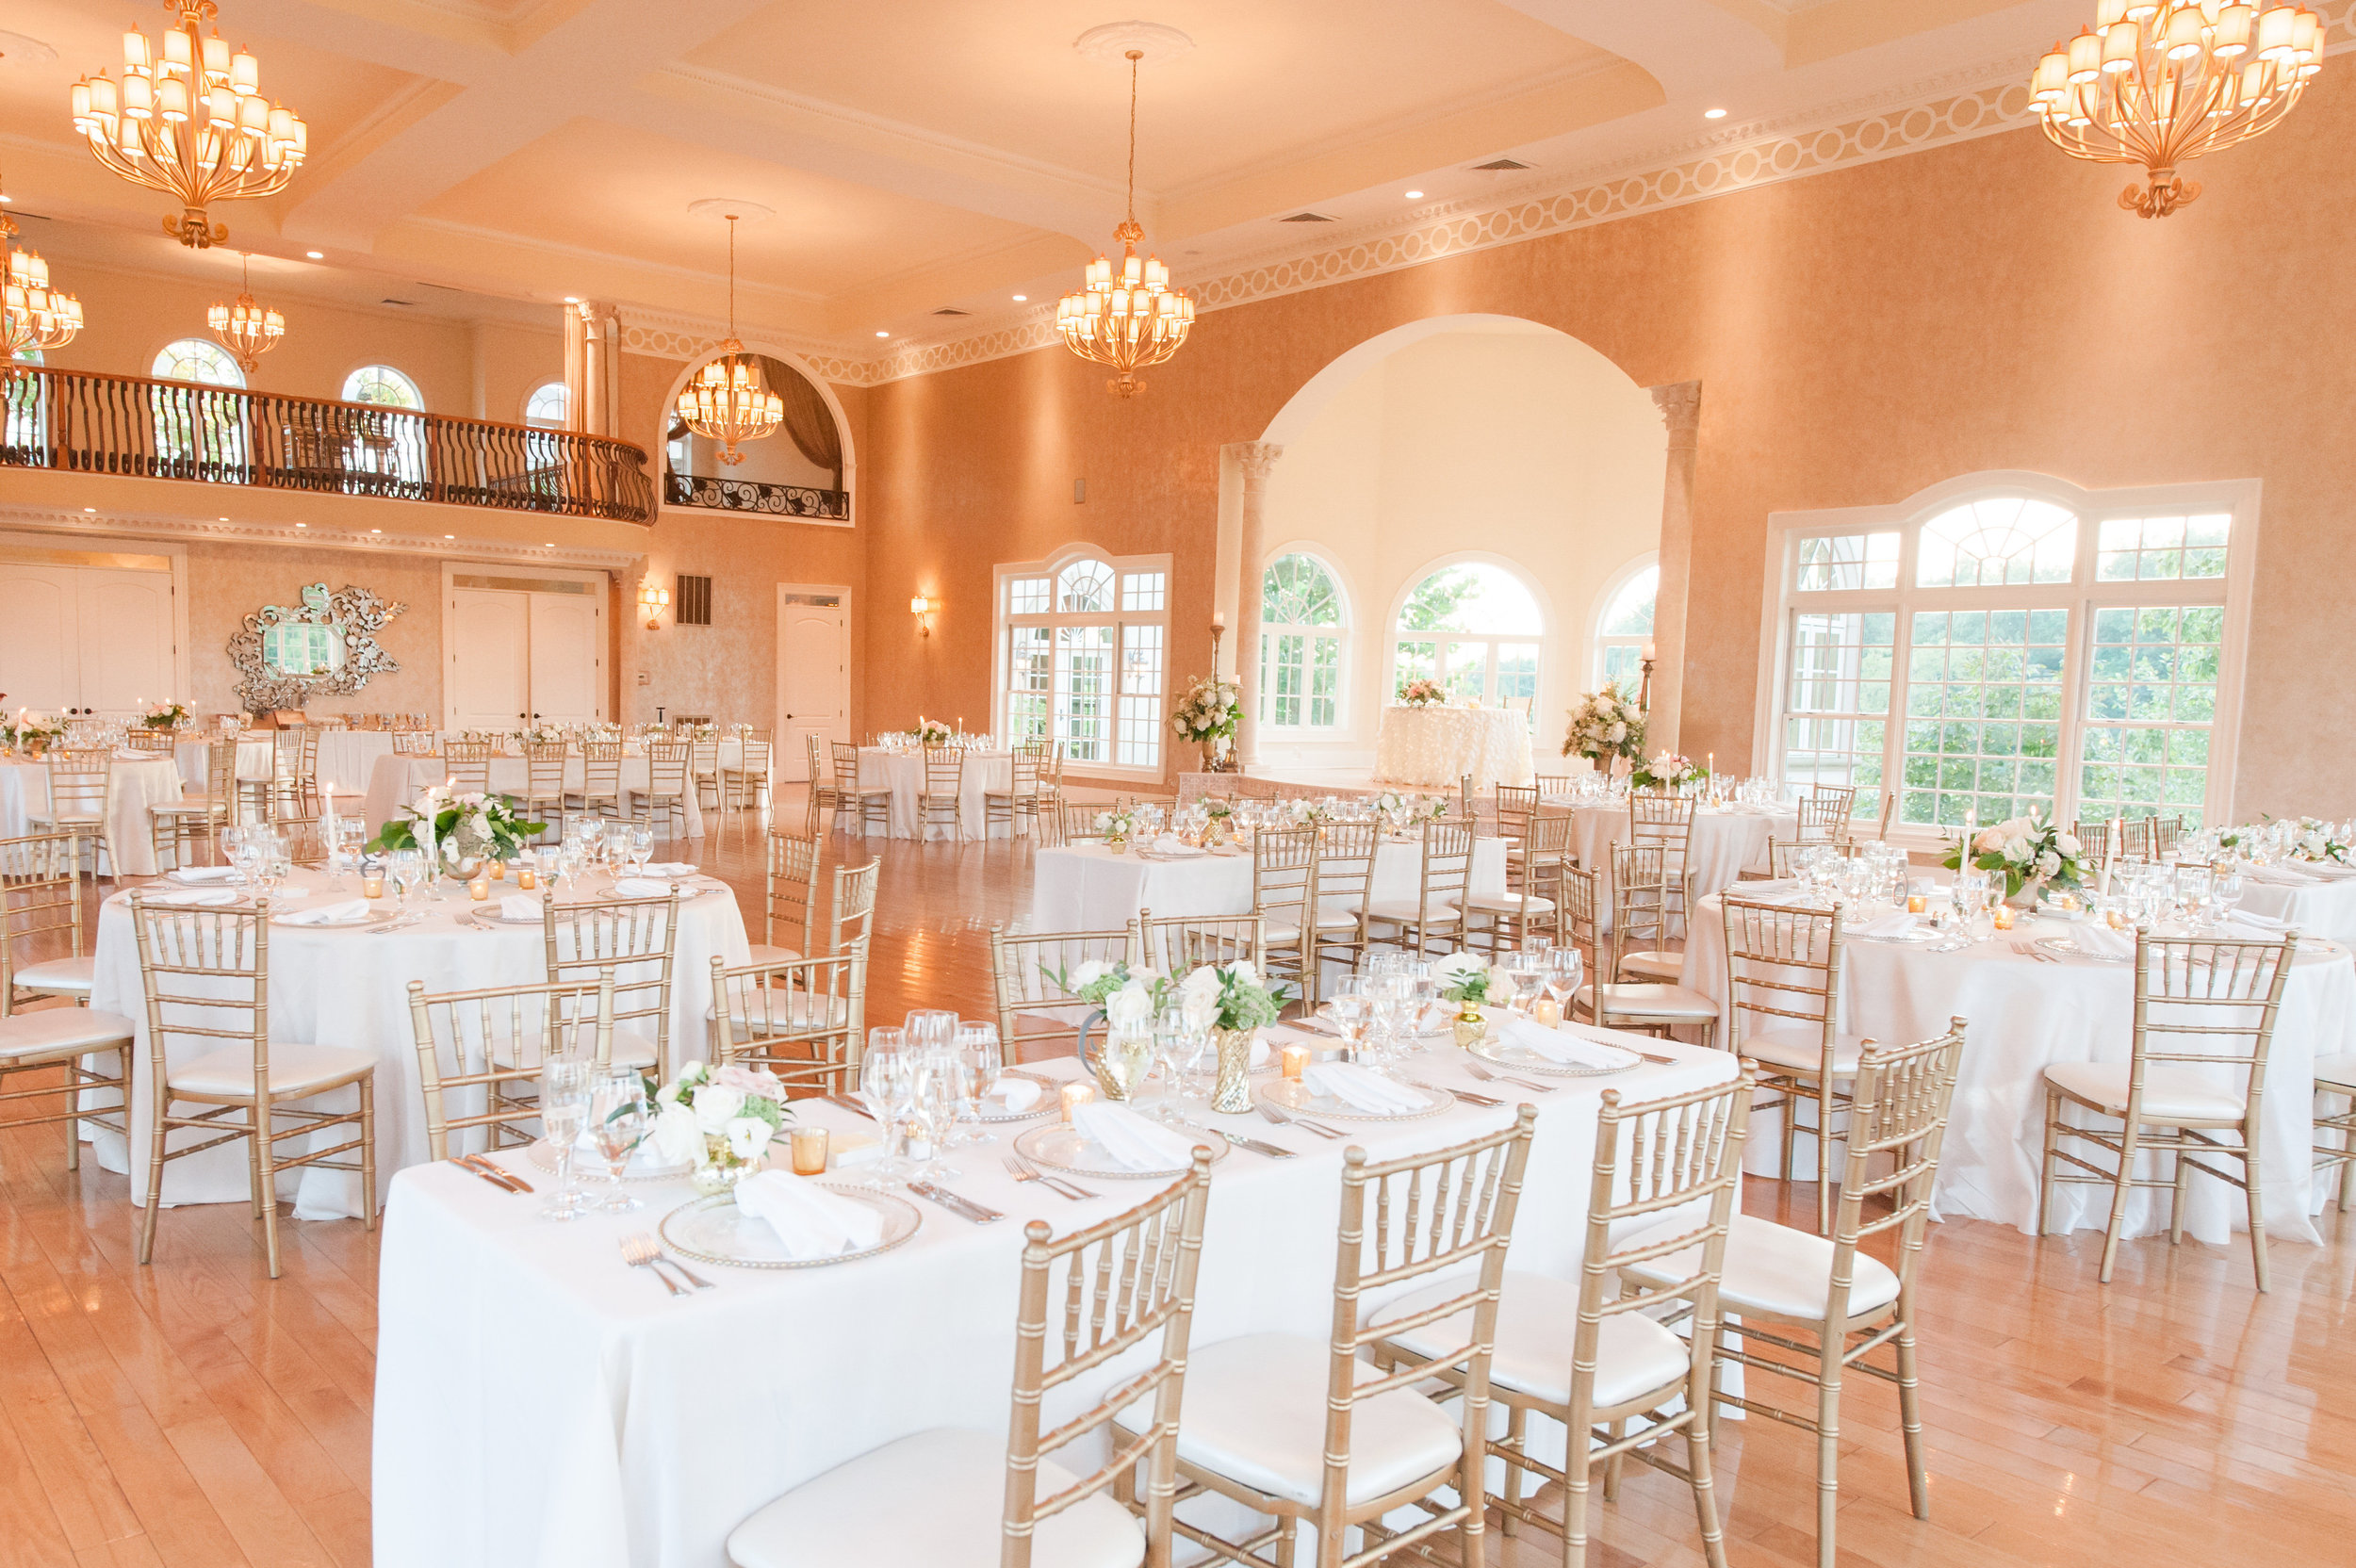 MORAIS VINEYARDS WEDDING A BEYOUTIFUL FETE EVENTS & DESIGN  - VIRGINIA AND DC WEDDING PLANNER 07.jpg